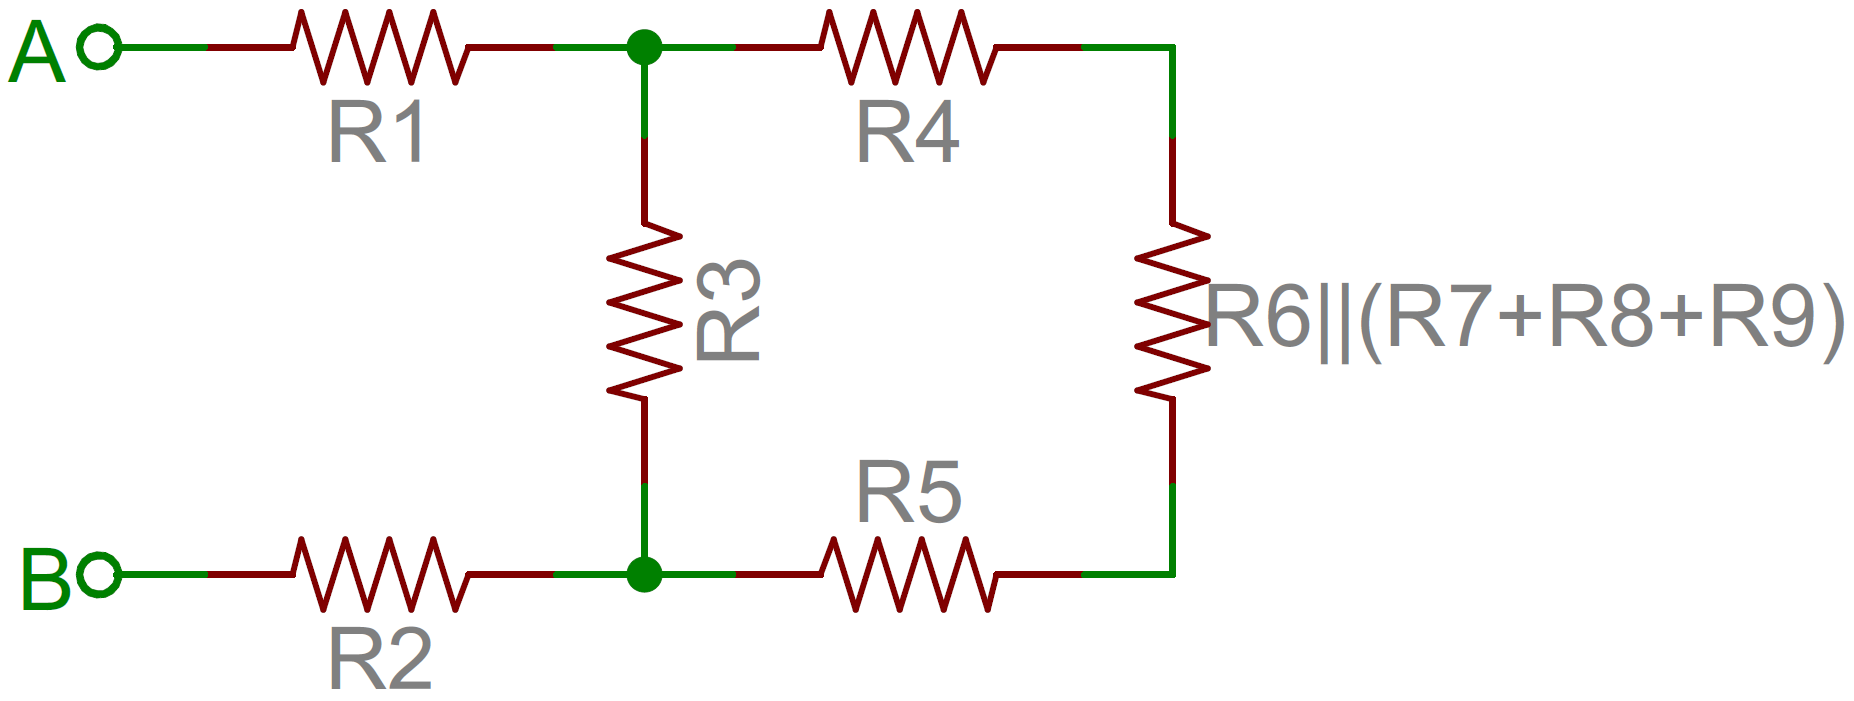 Resistors Series Circuit With A Voltage Source Such As Battery Or In This Resistor Network Simplified